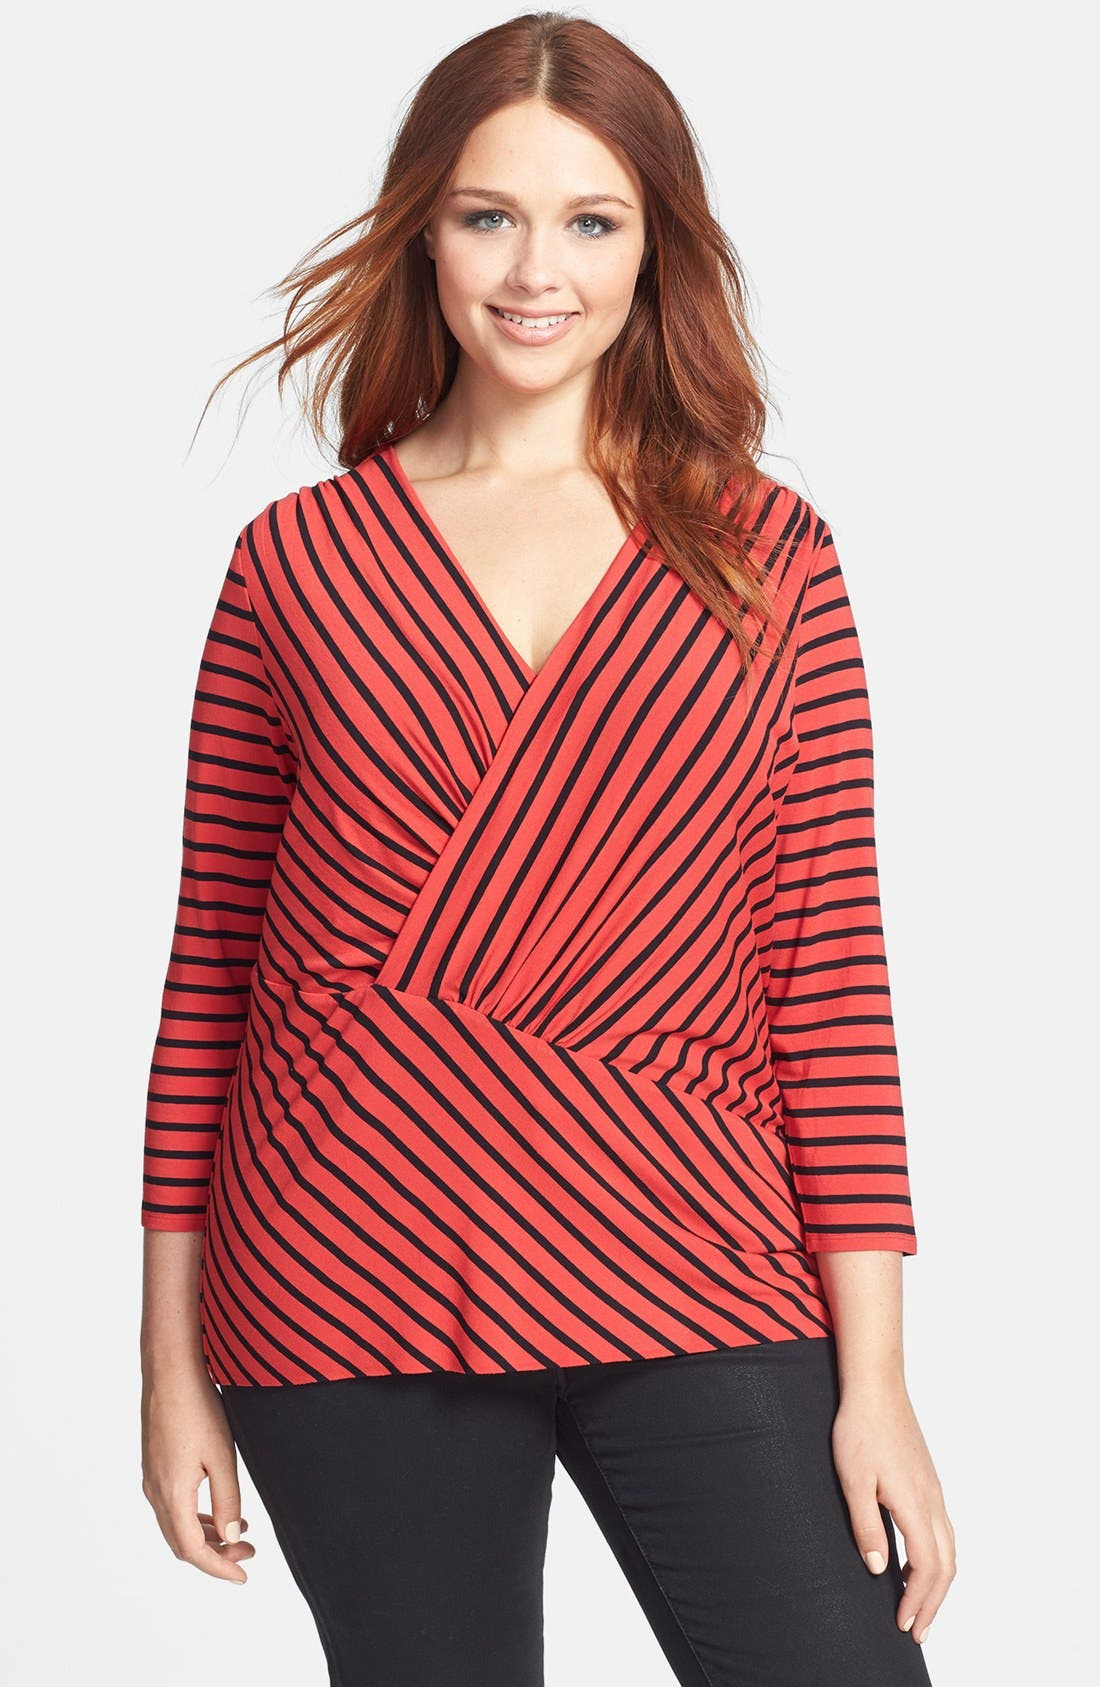 Alternate Image 1 Selected - Vince Camuto 'Retro Stripes' Asymmetrical Tunic (Plus Size)